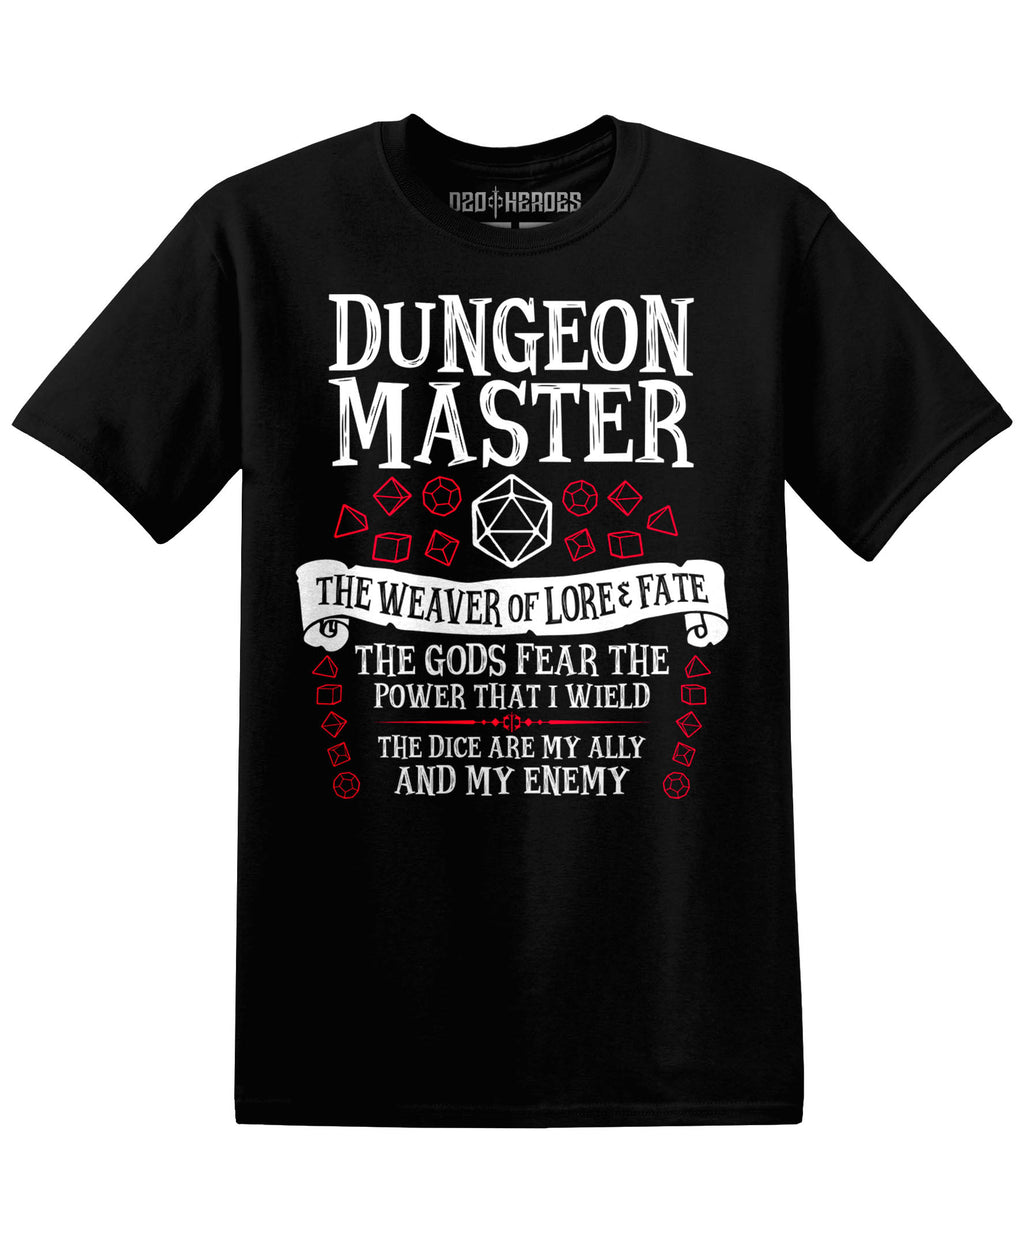 Dungeon Master : The Weaver of Lore and Fate - T-Shirt - D20 Heroes / Dungeons and Dragons and Fantasy Clothing and Merchandise